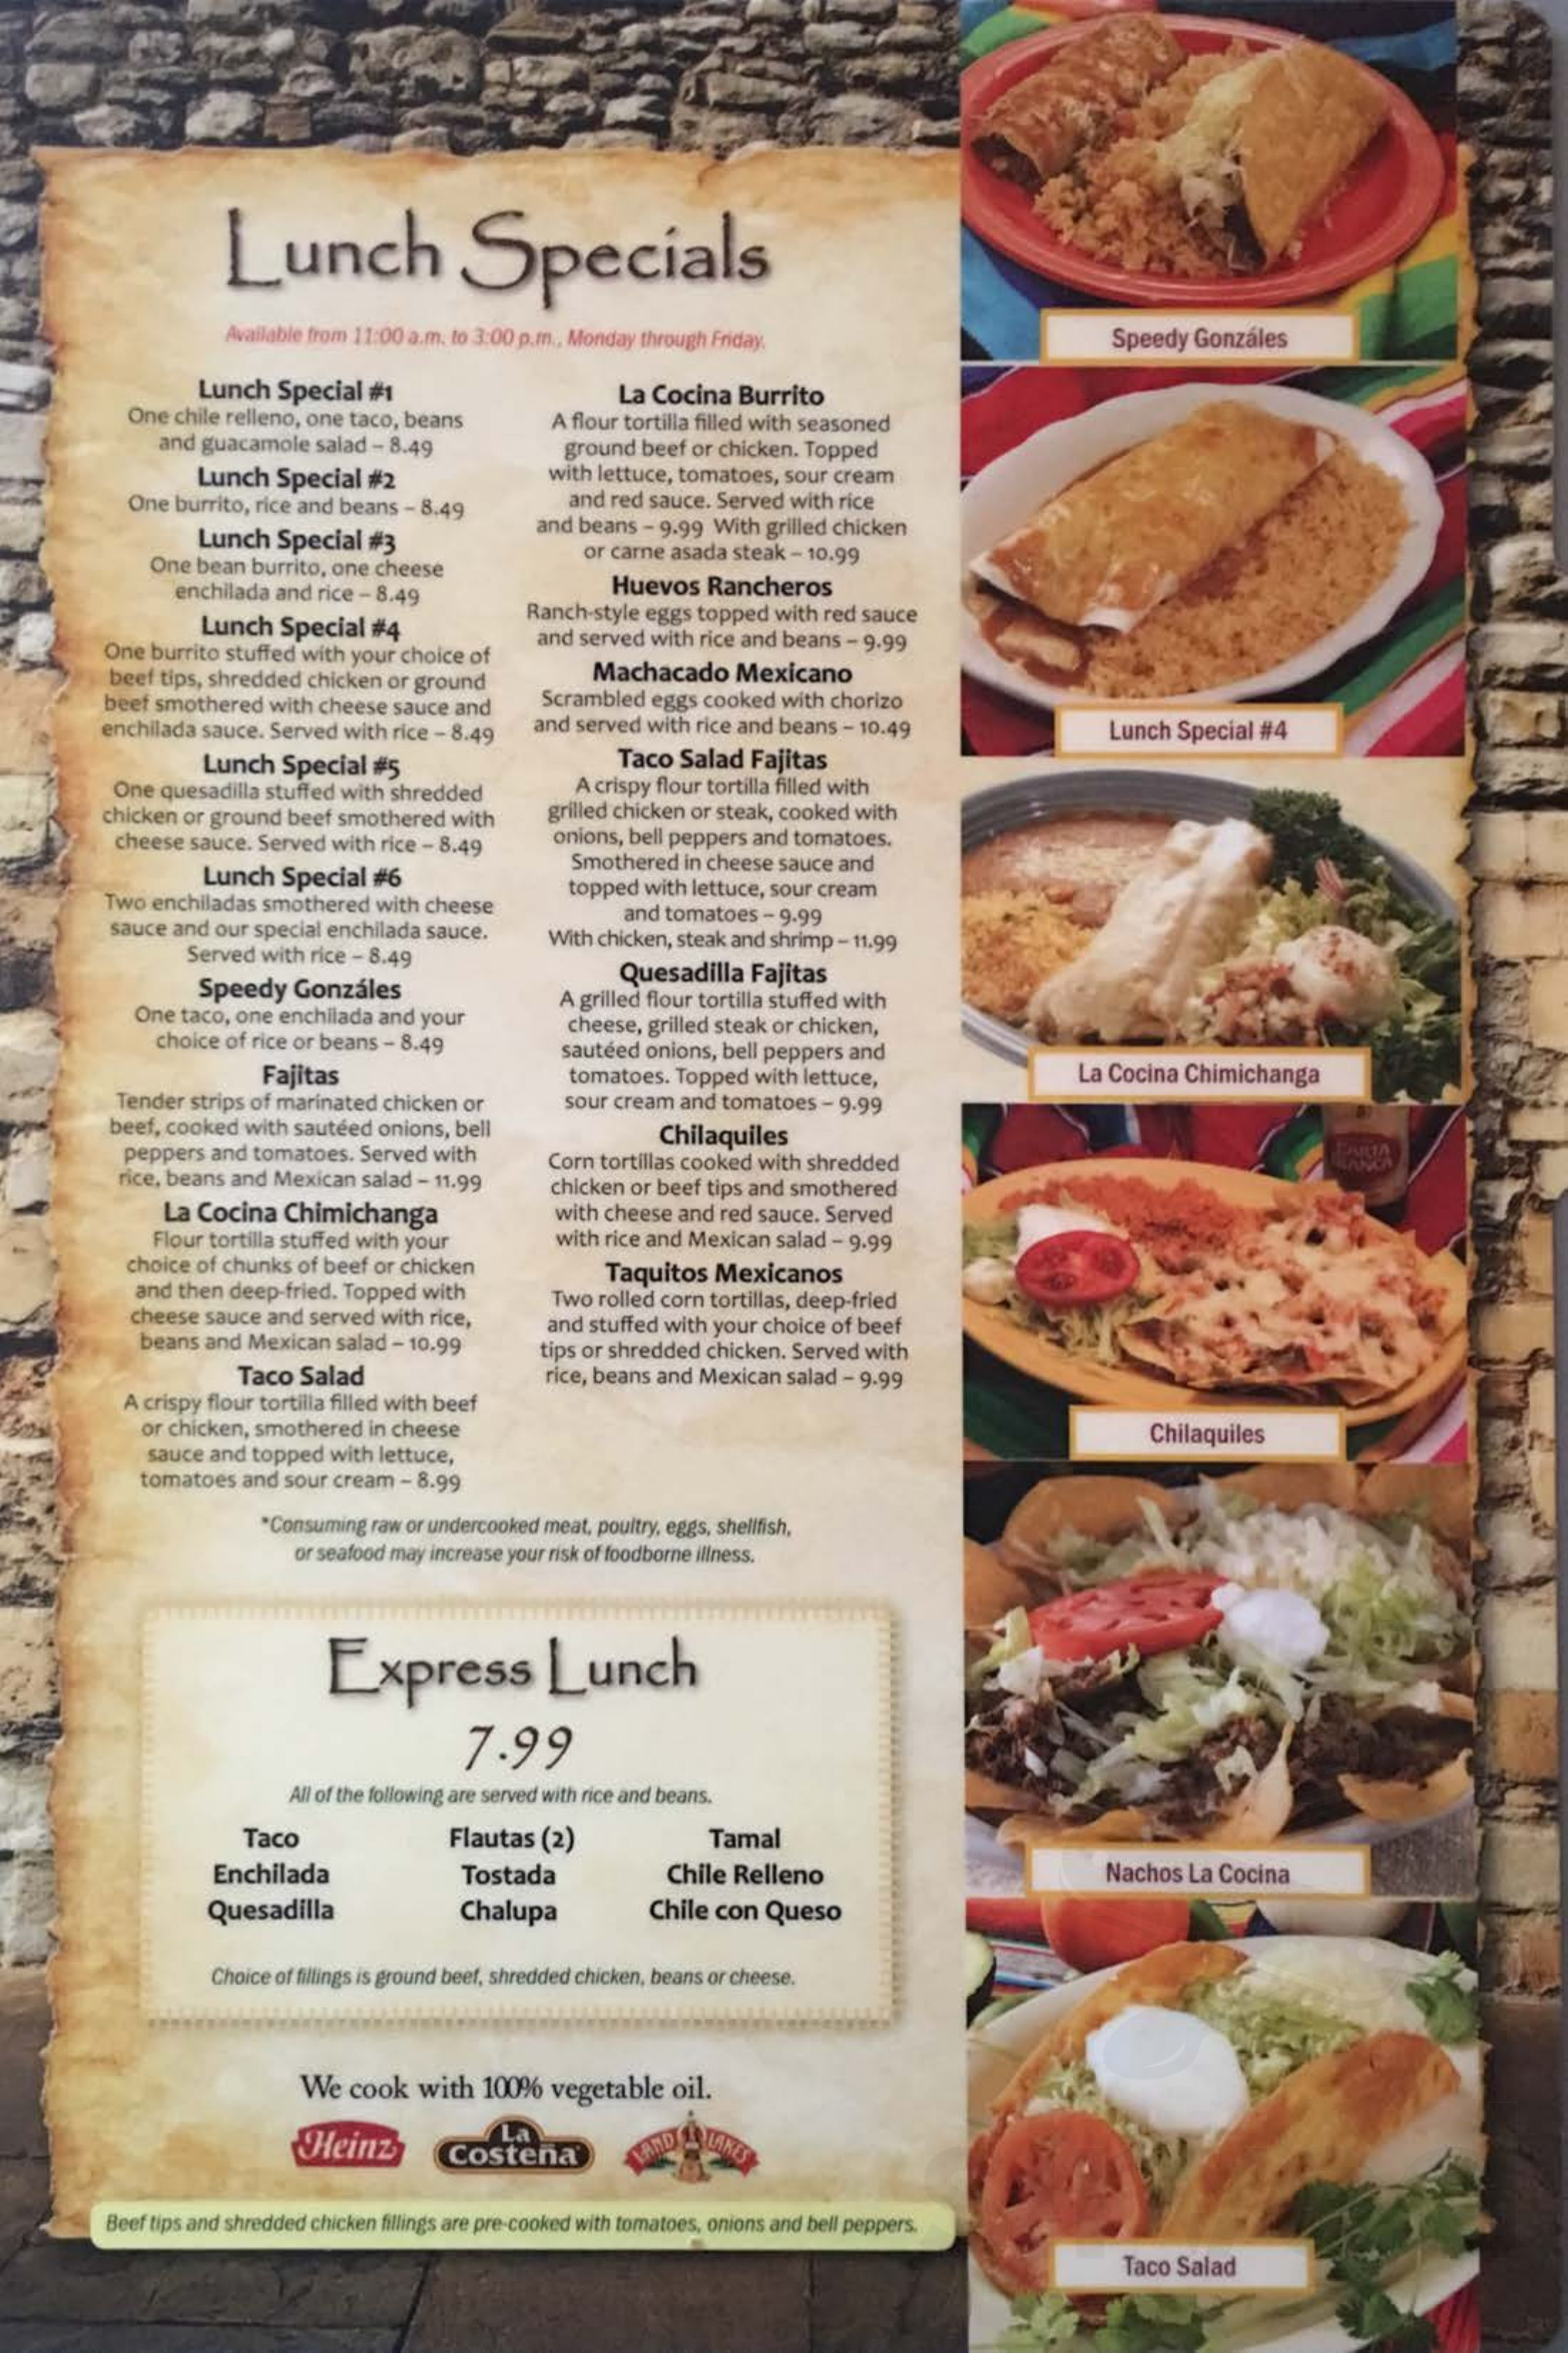 La Cocina Restaurant Menu Menu For La Cocina Mexicana In Battle Creek Michigan